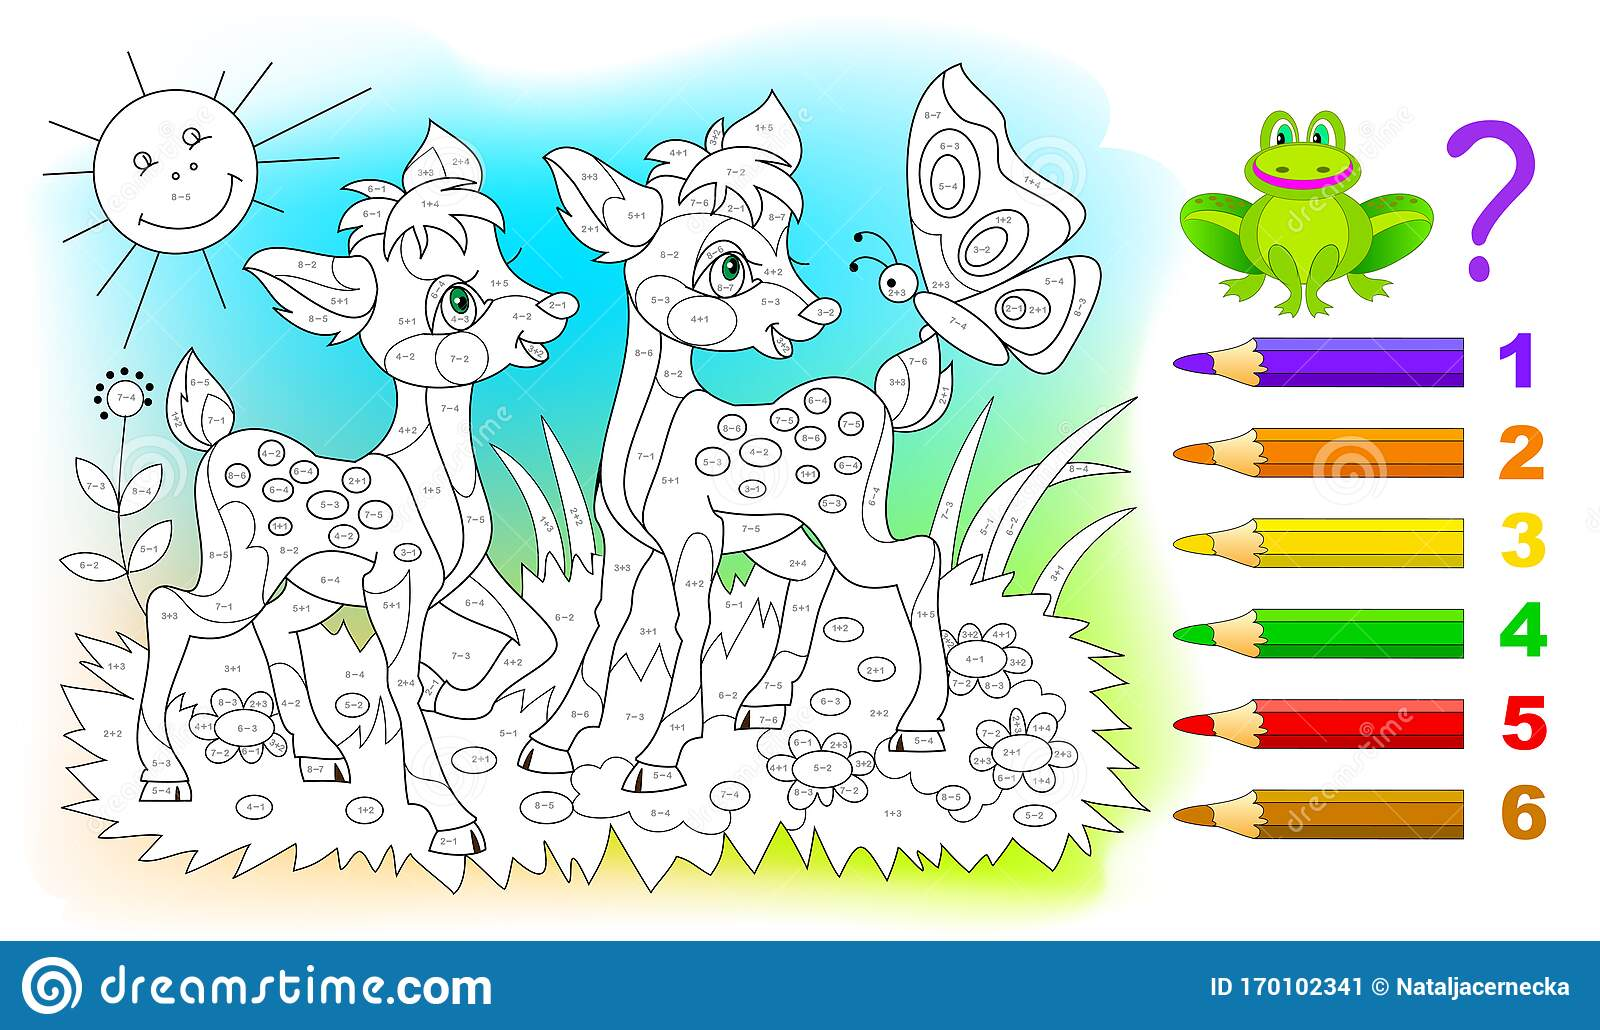 Math Education For Children Coloring Book Mathematical